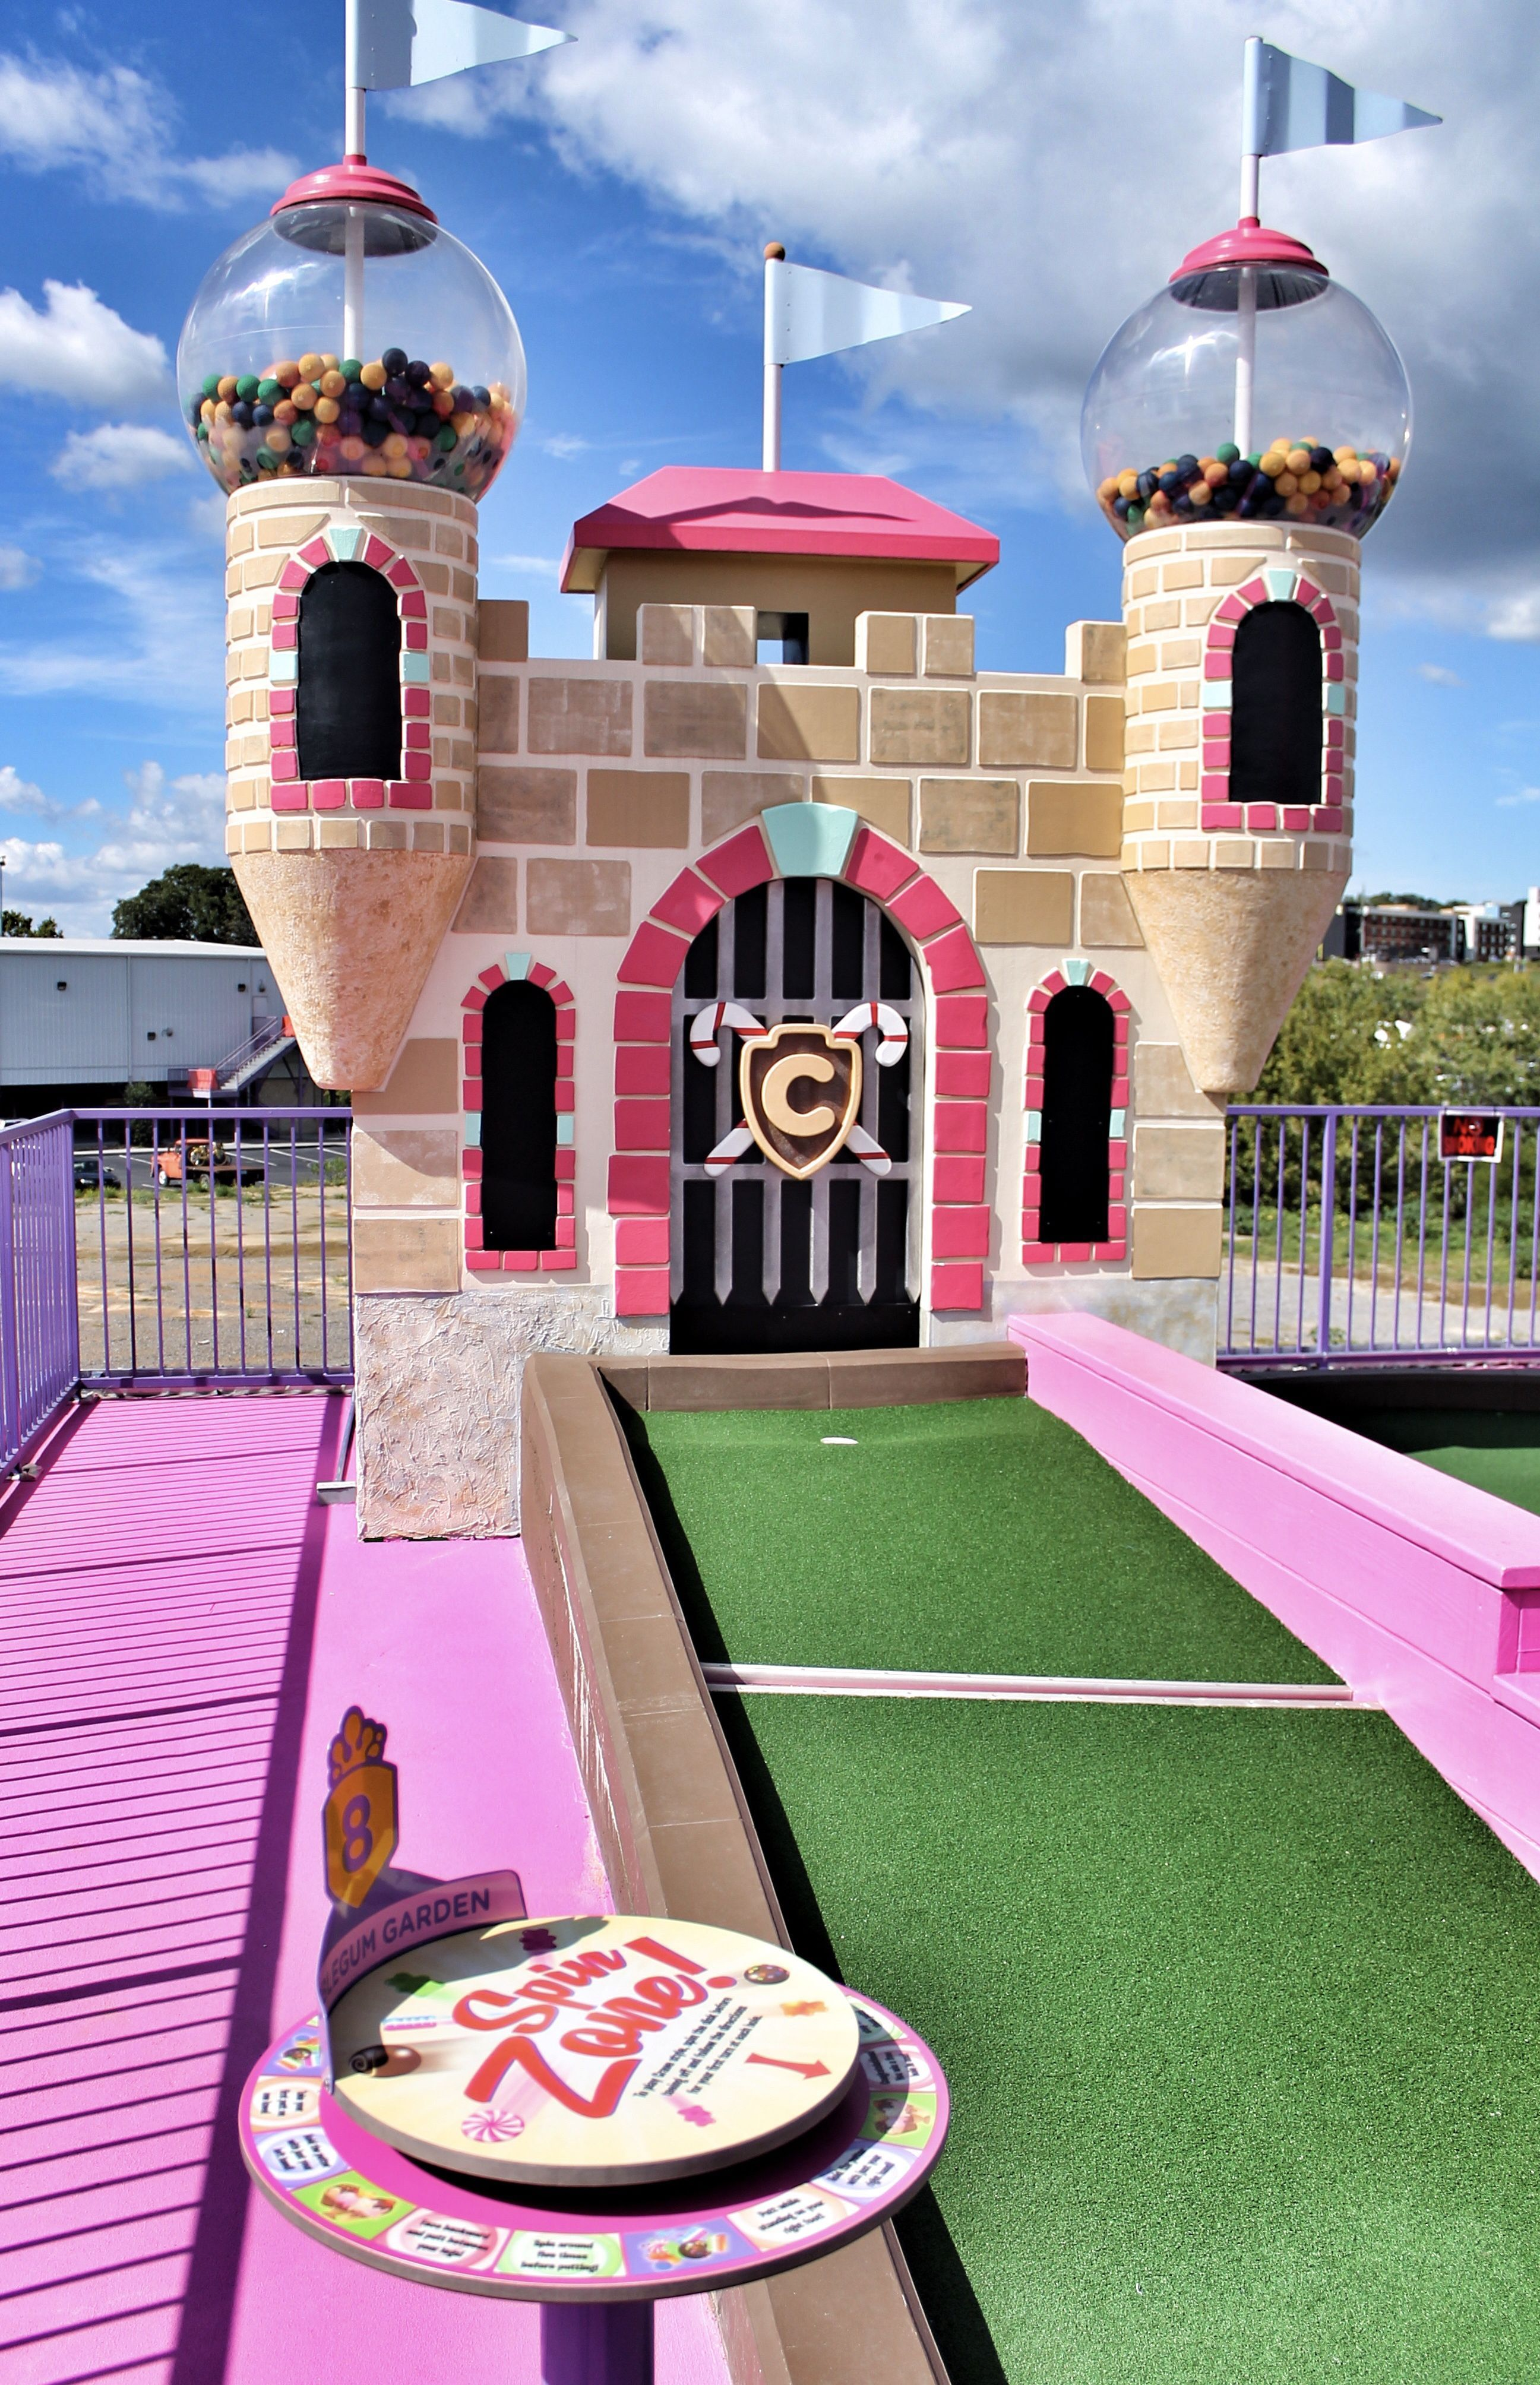 37+ Castle golf and games ideas